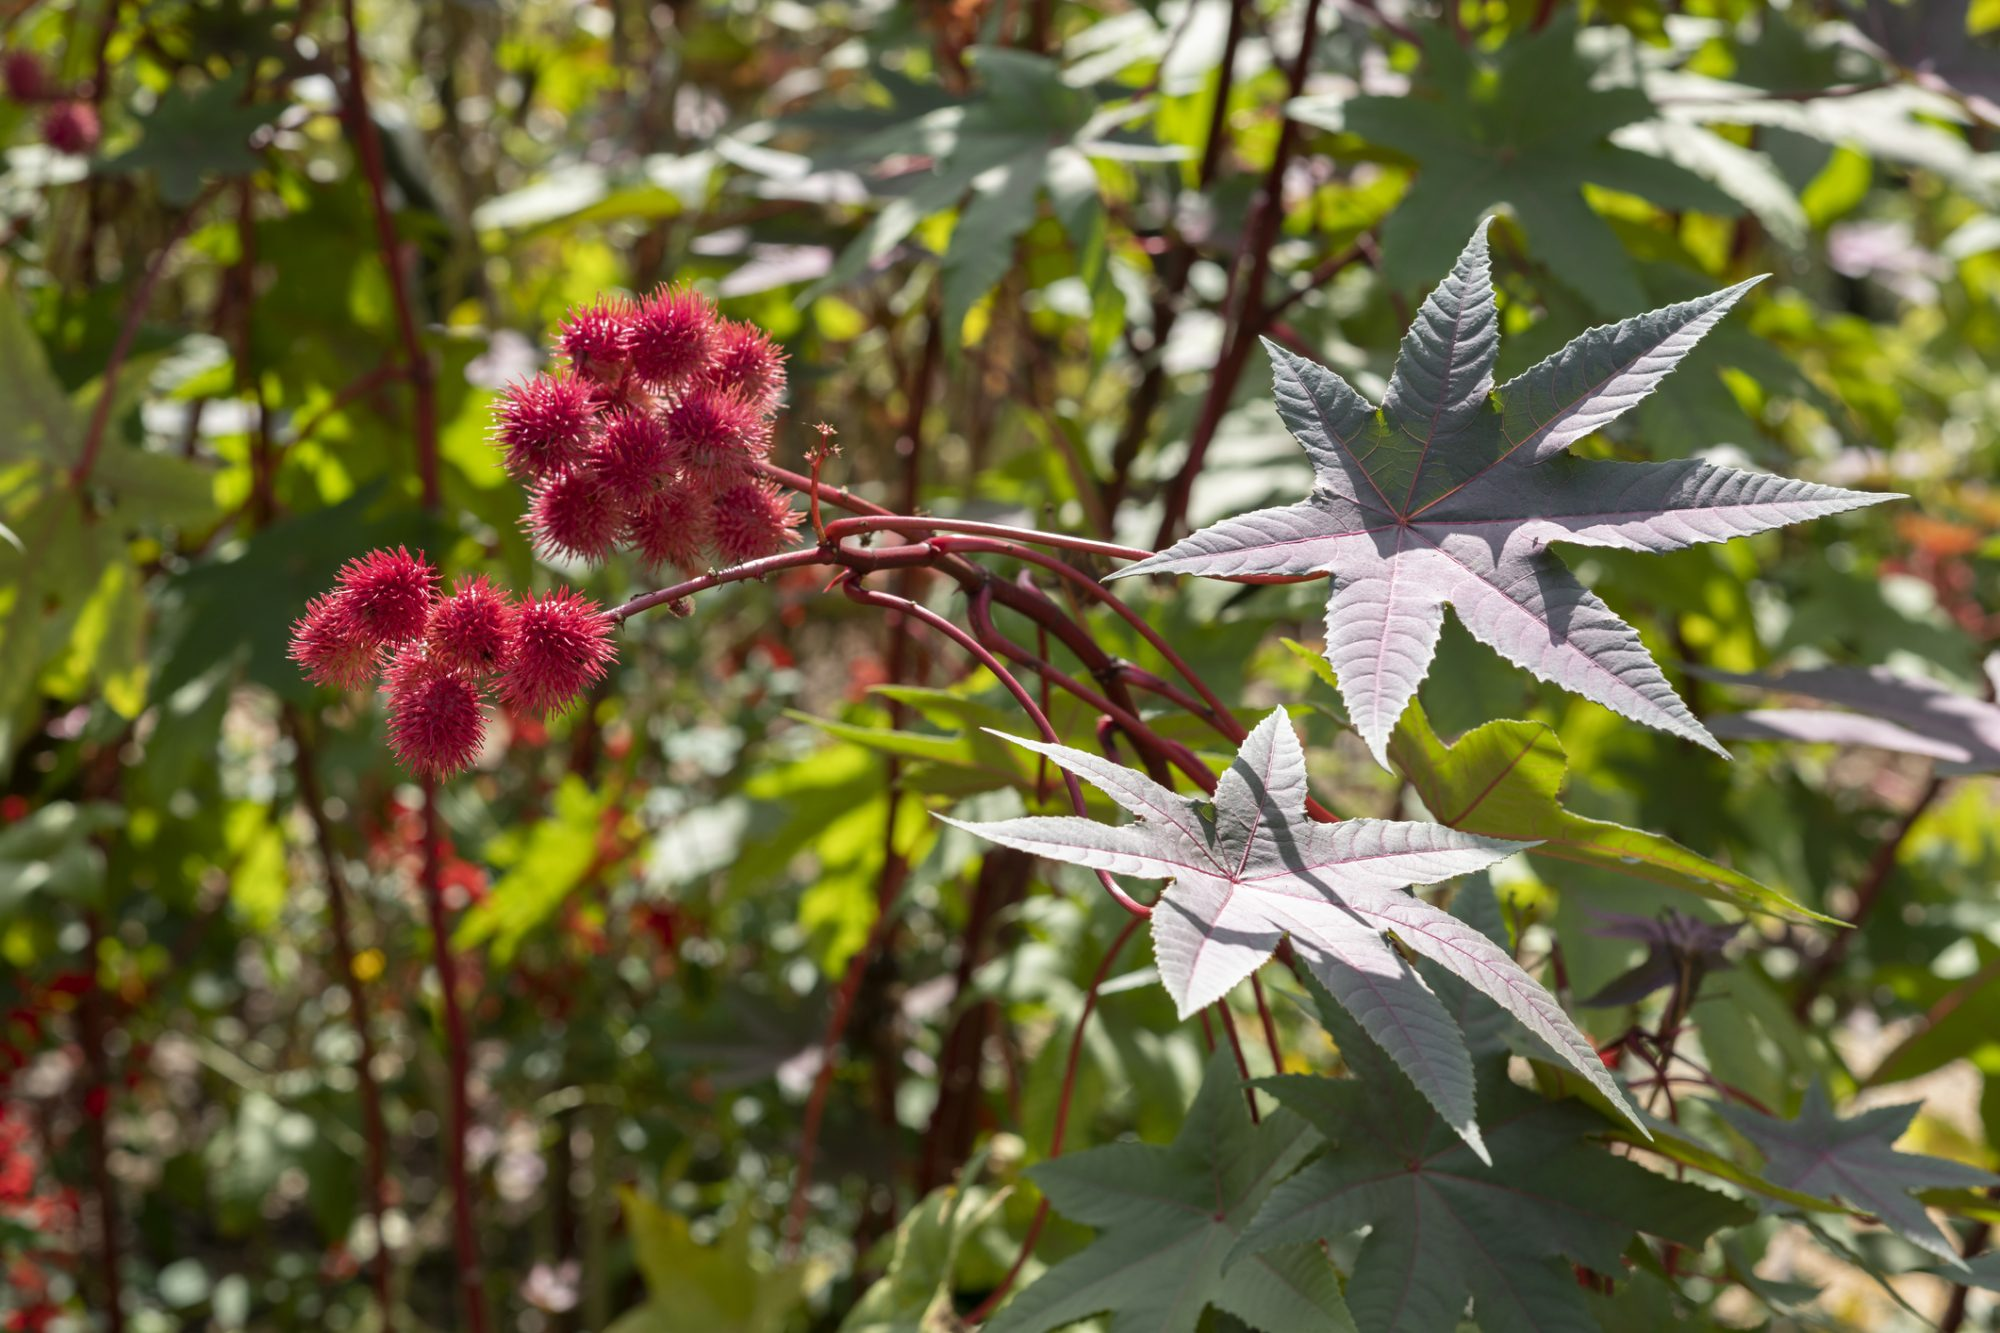 Castor Bean plant with red sees capsules